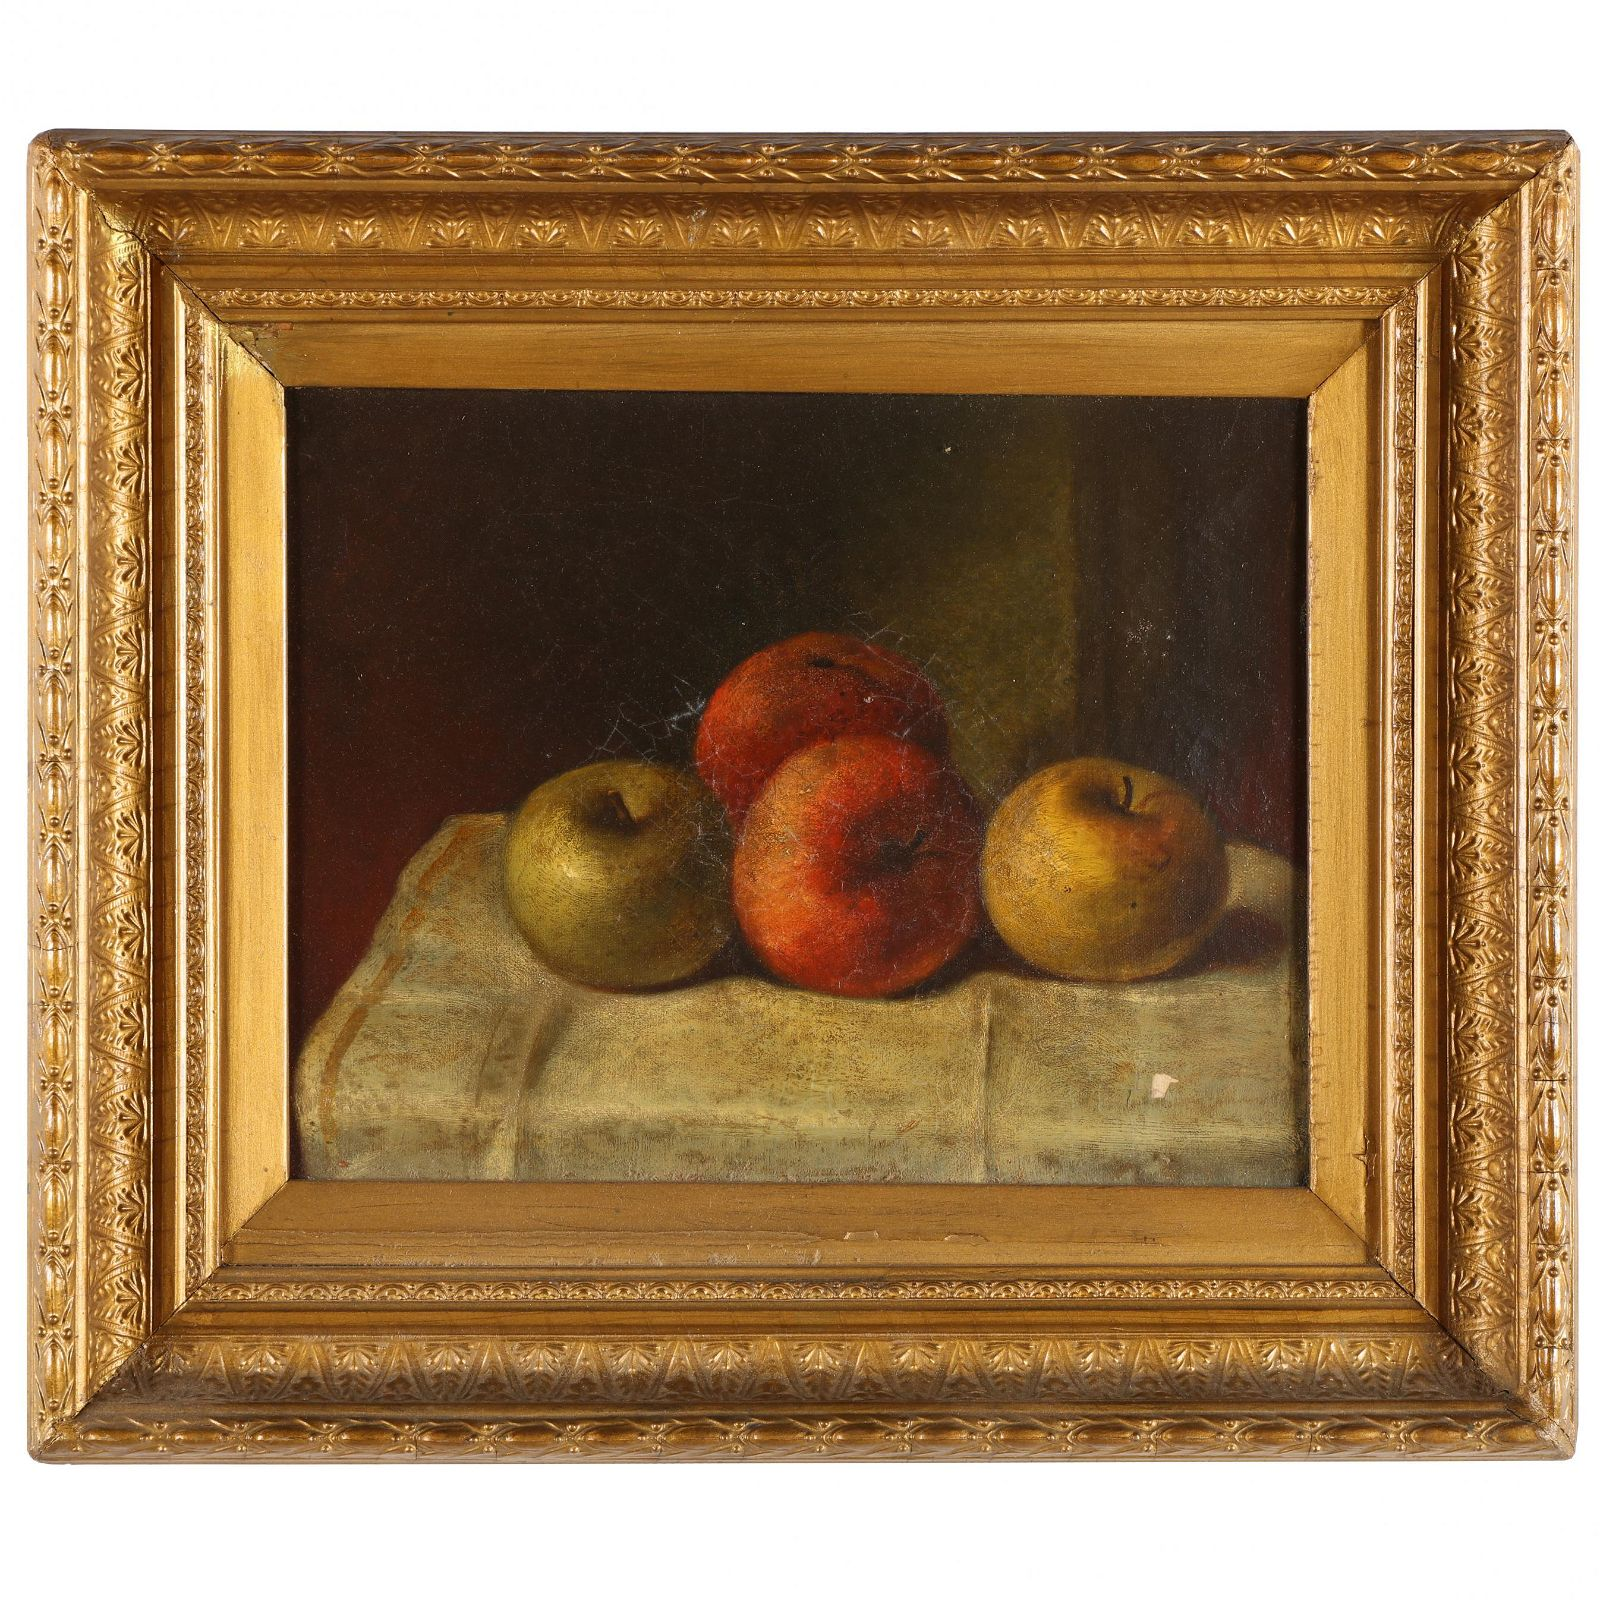 An Antique Still Life Painting with Apples